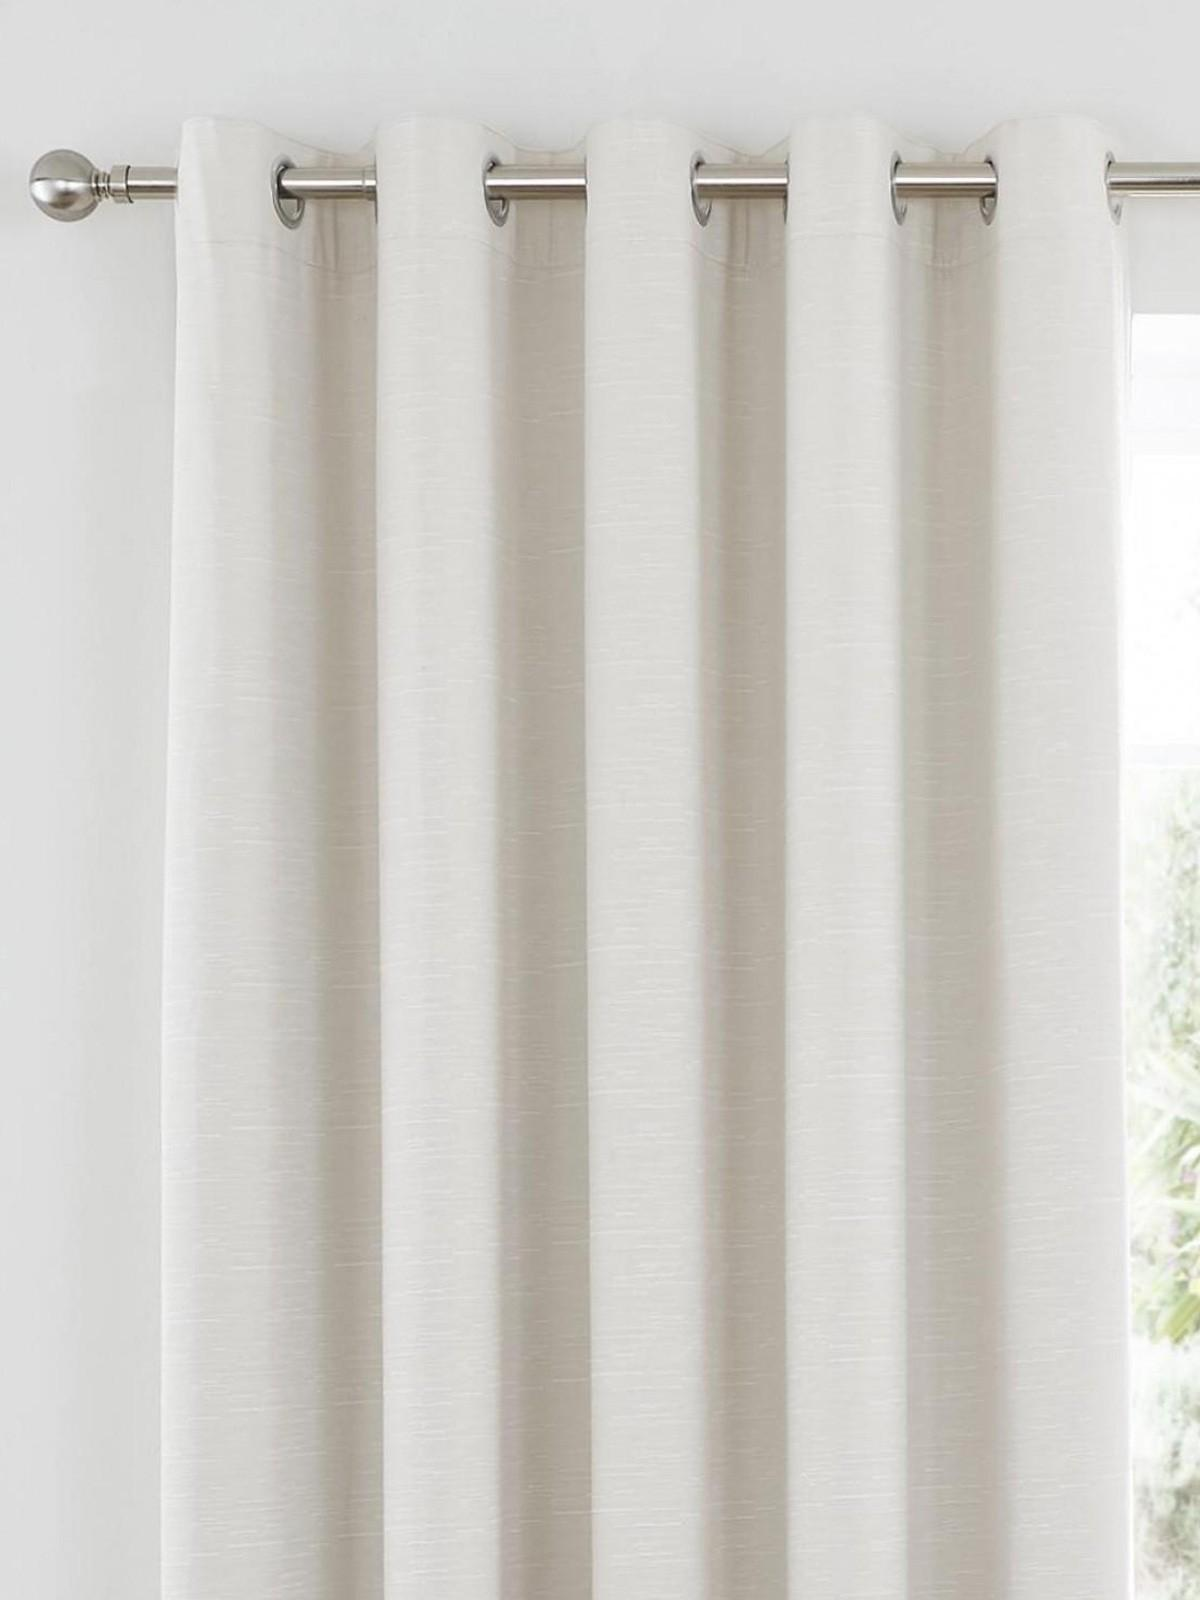 102 Inch Curtains Harmony Thermal Blackout Eyelet Curtains Cream Ponden Home